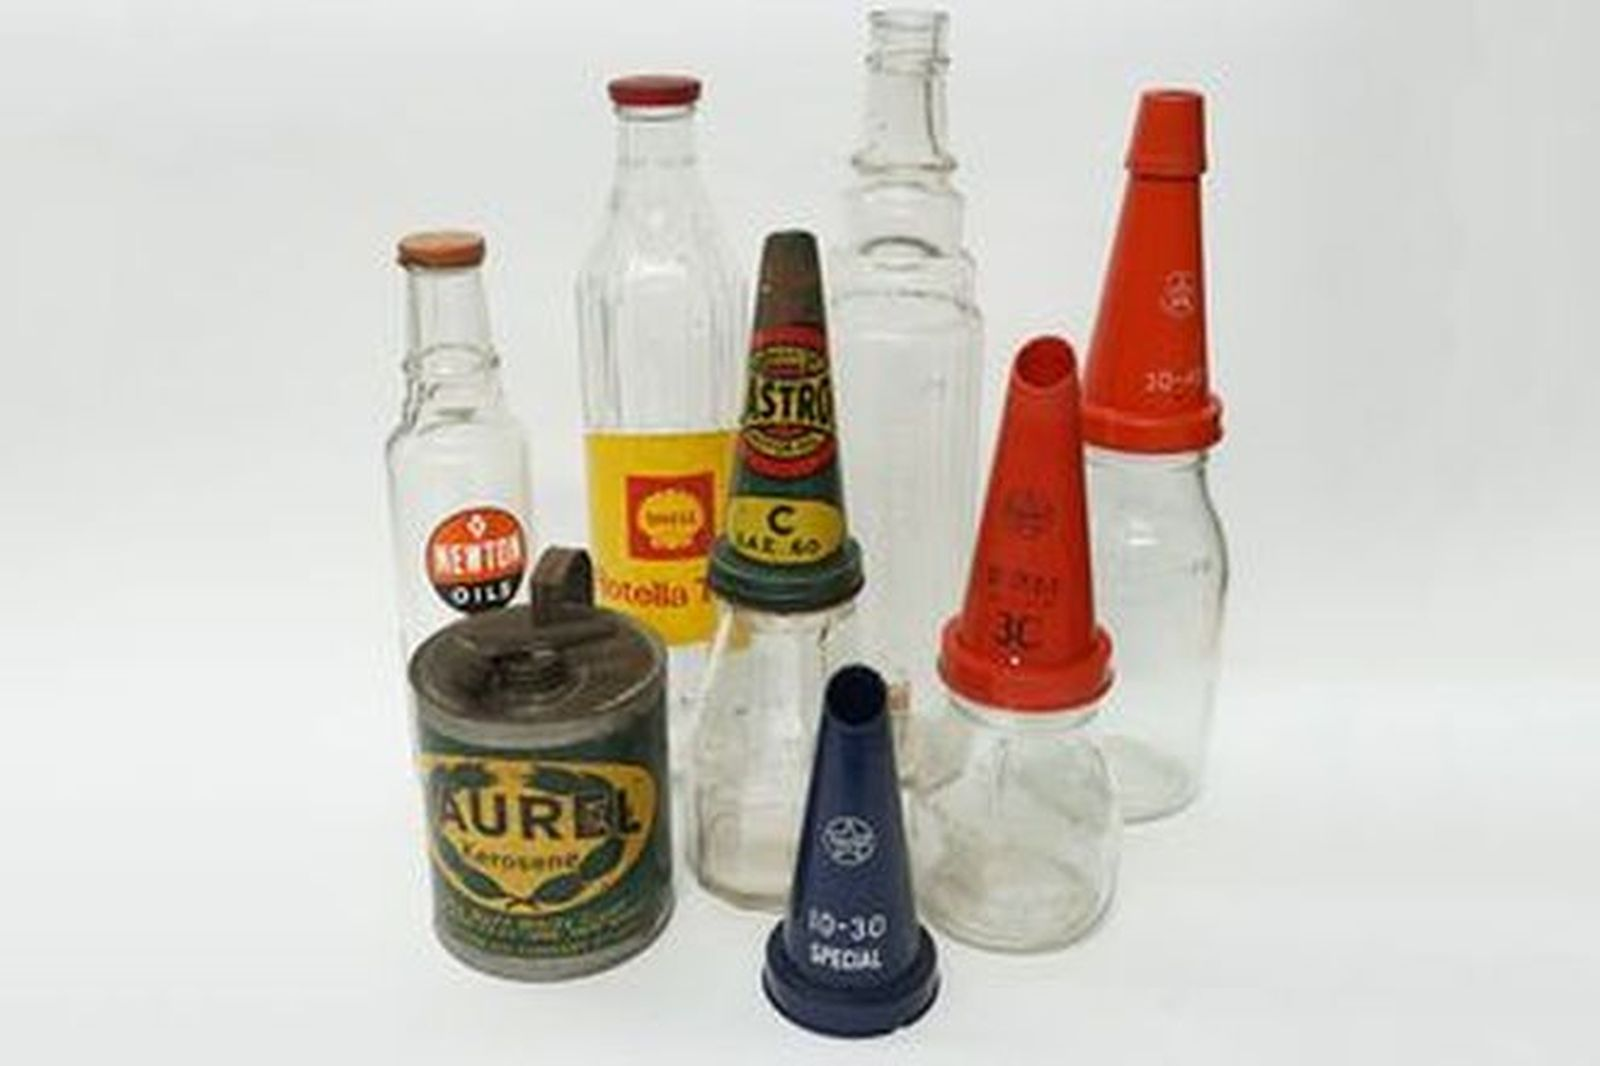 6 x Oil Bottles & 1 x Laurel Kerosene Tin - From the 'Ian Cummins Collection'